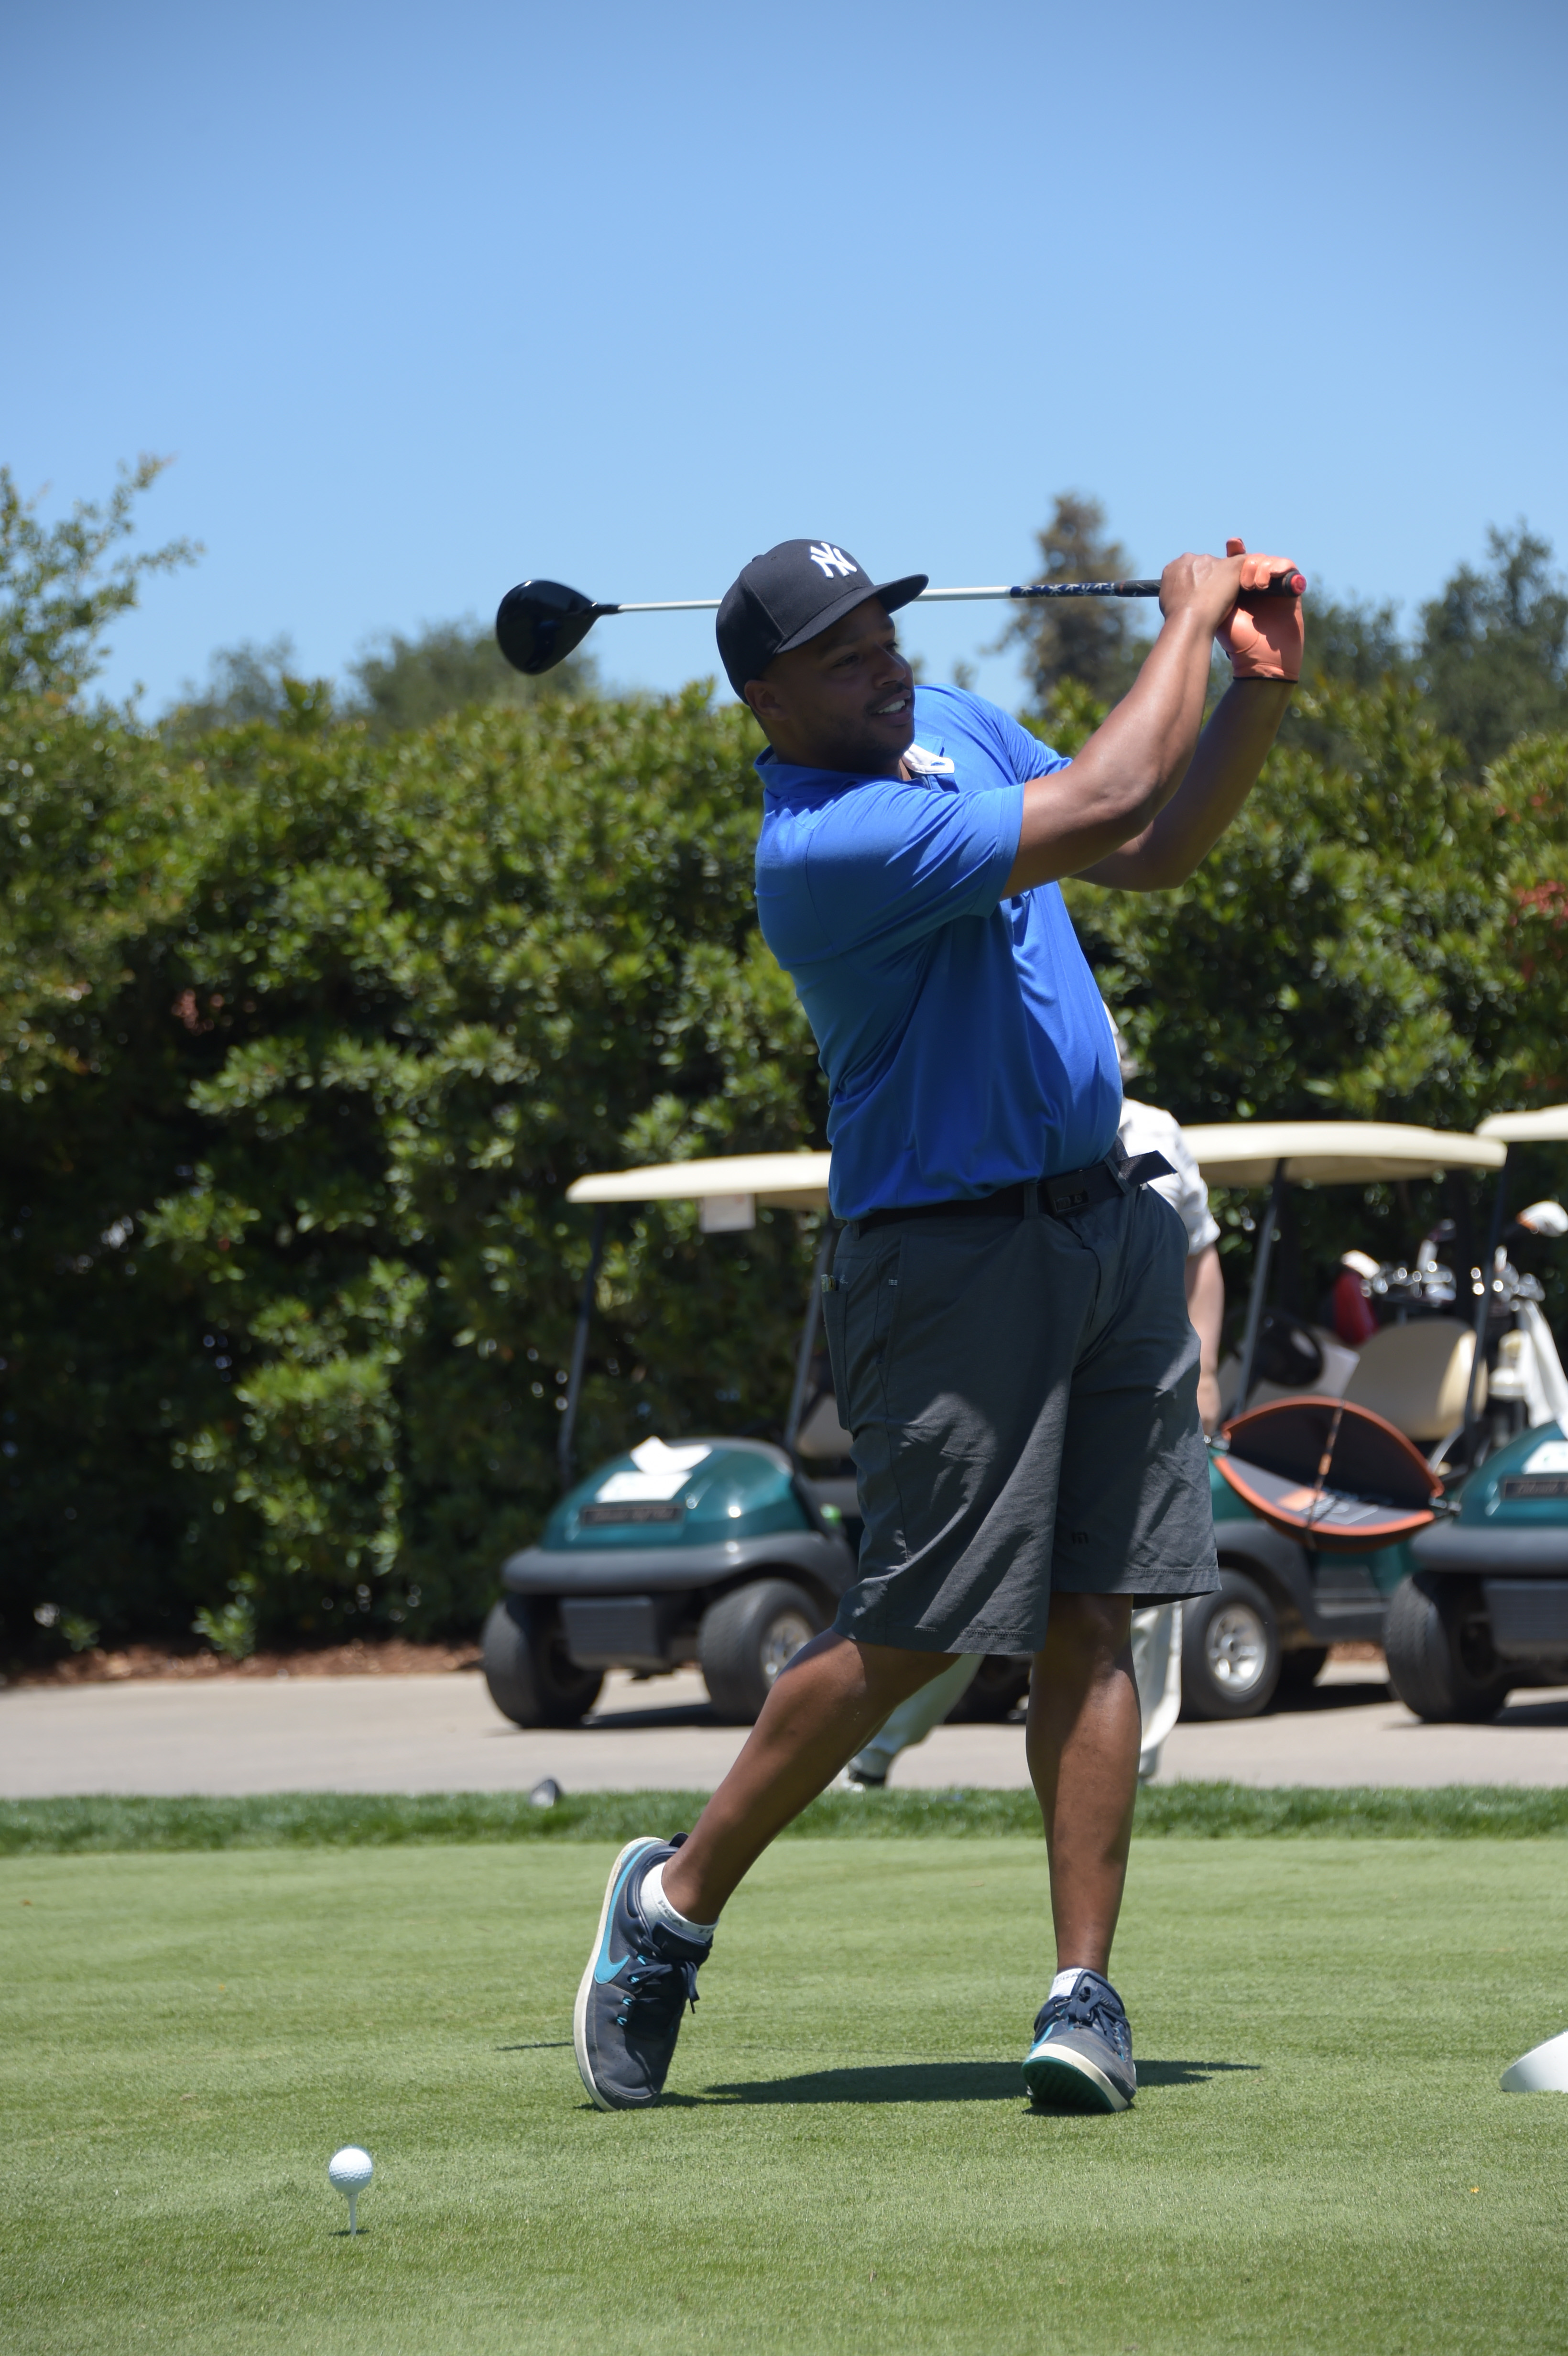 Donald Faison plays at the Screen Actors Guild Foundation's 6th Annual Los Angeles Golf Classic on June 8, 2015 in Burbank, California. (Photo by Jason Kempin/Getty Images for The Screen Actors Guild Foundation)